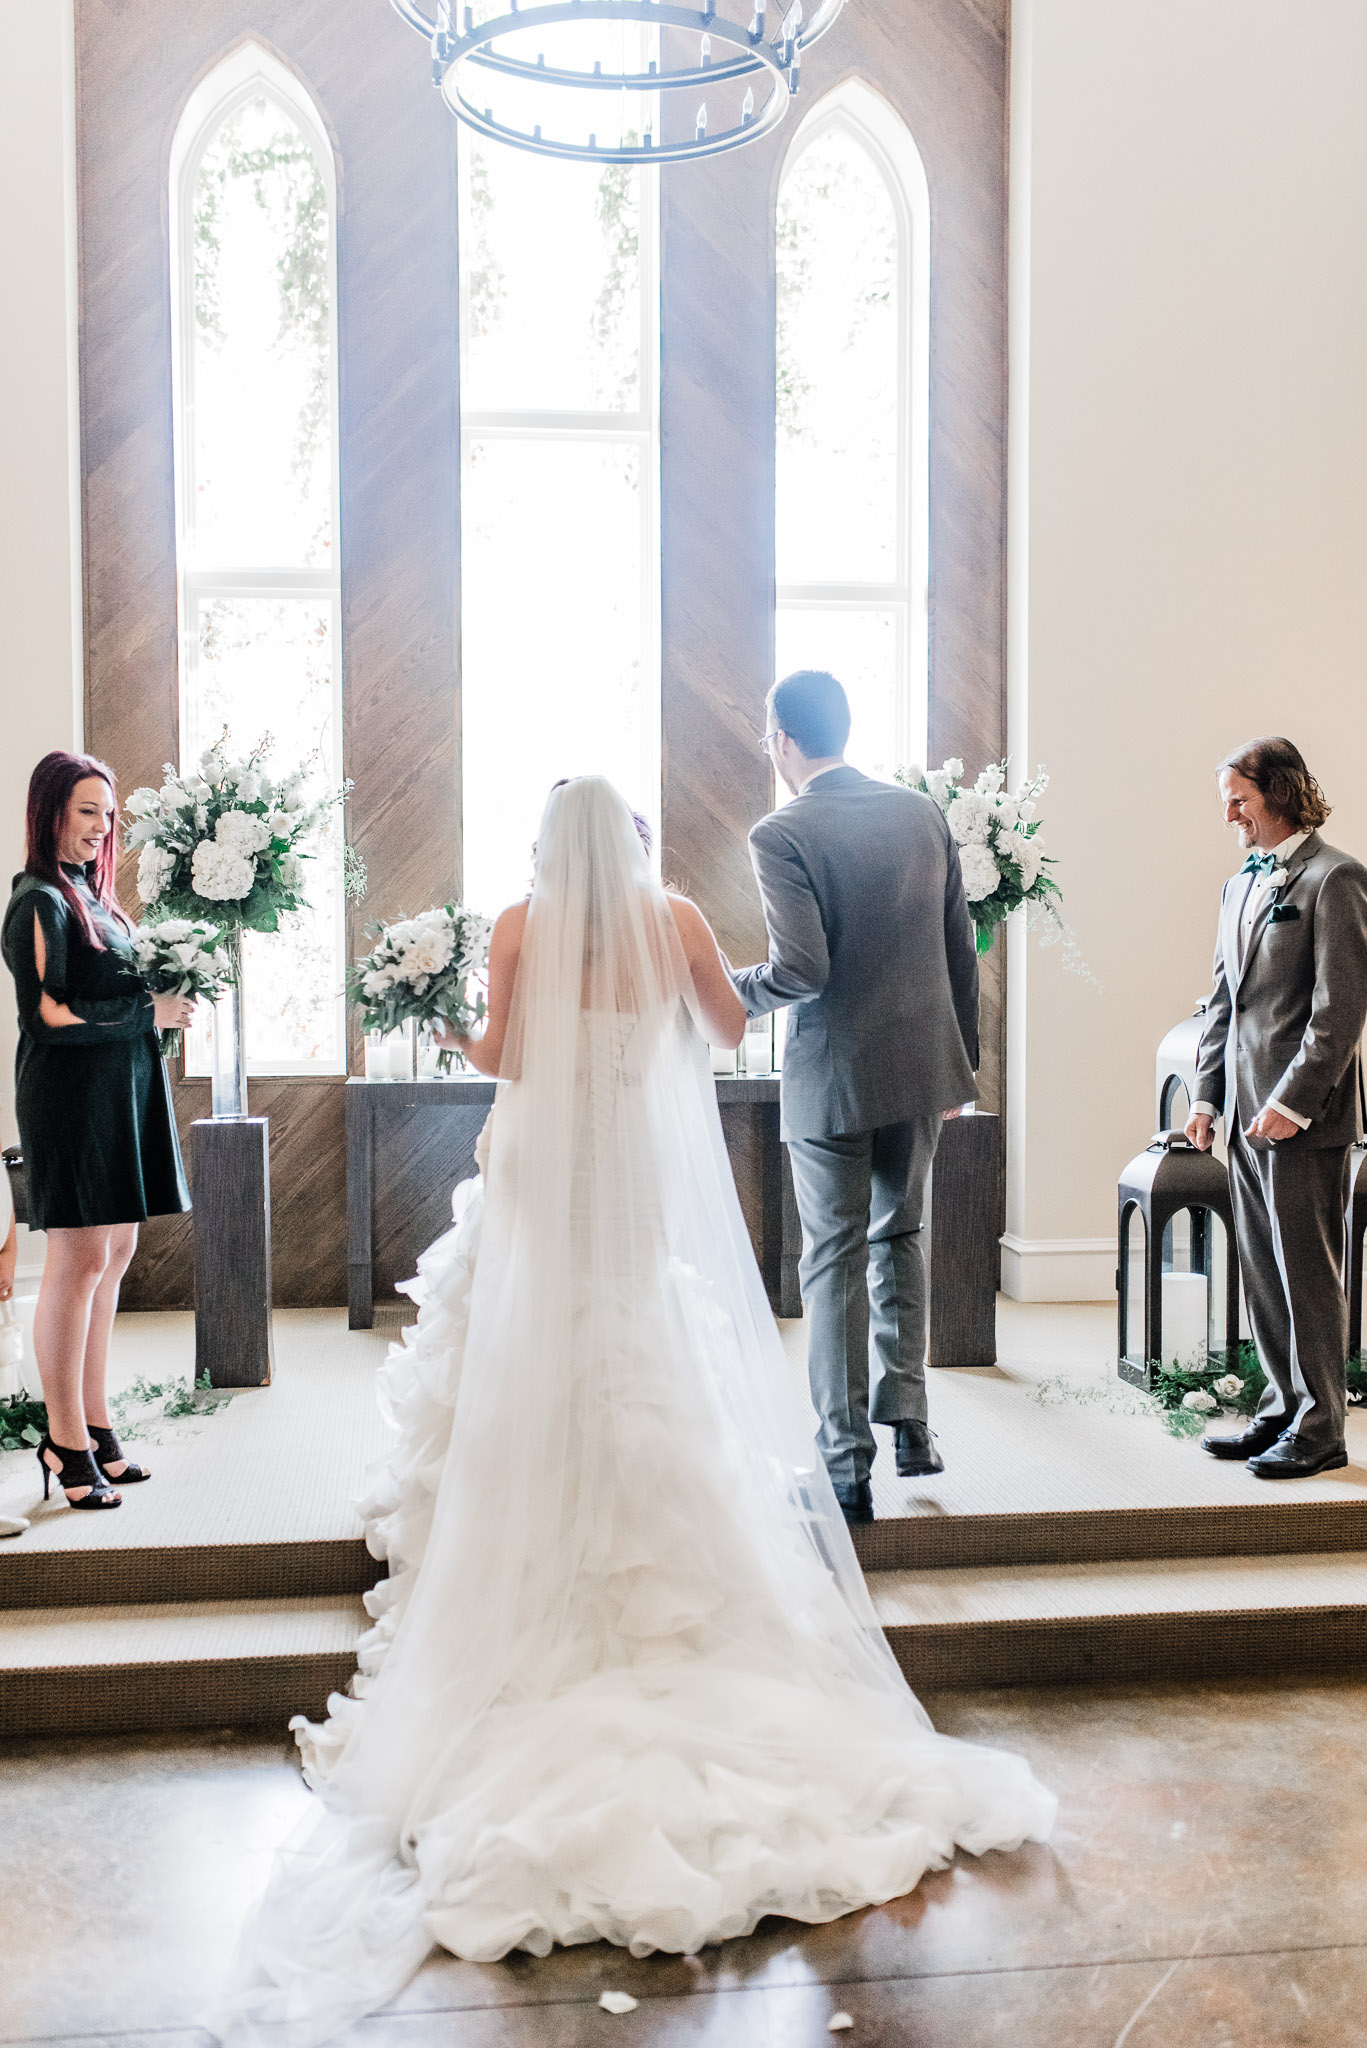 Groom takes his bride to the altar